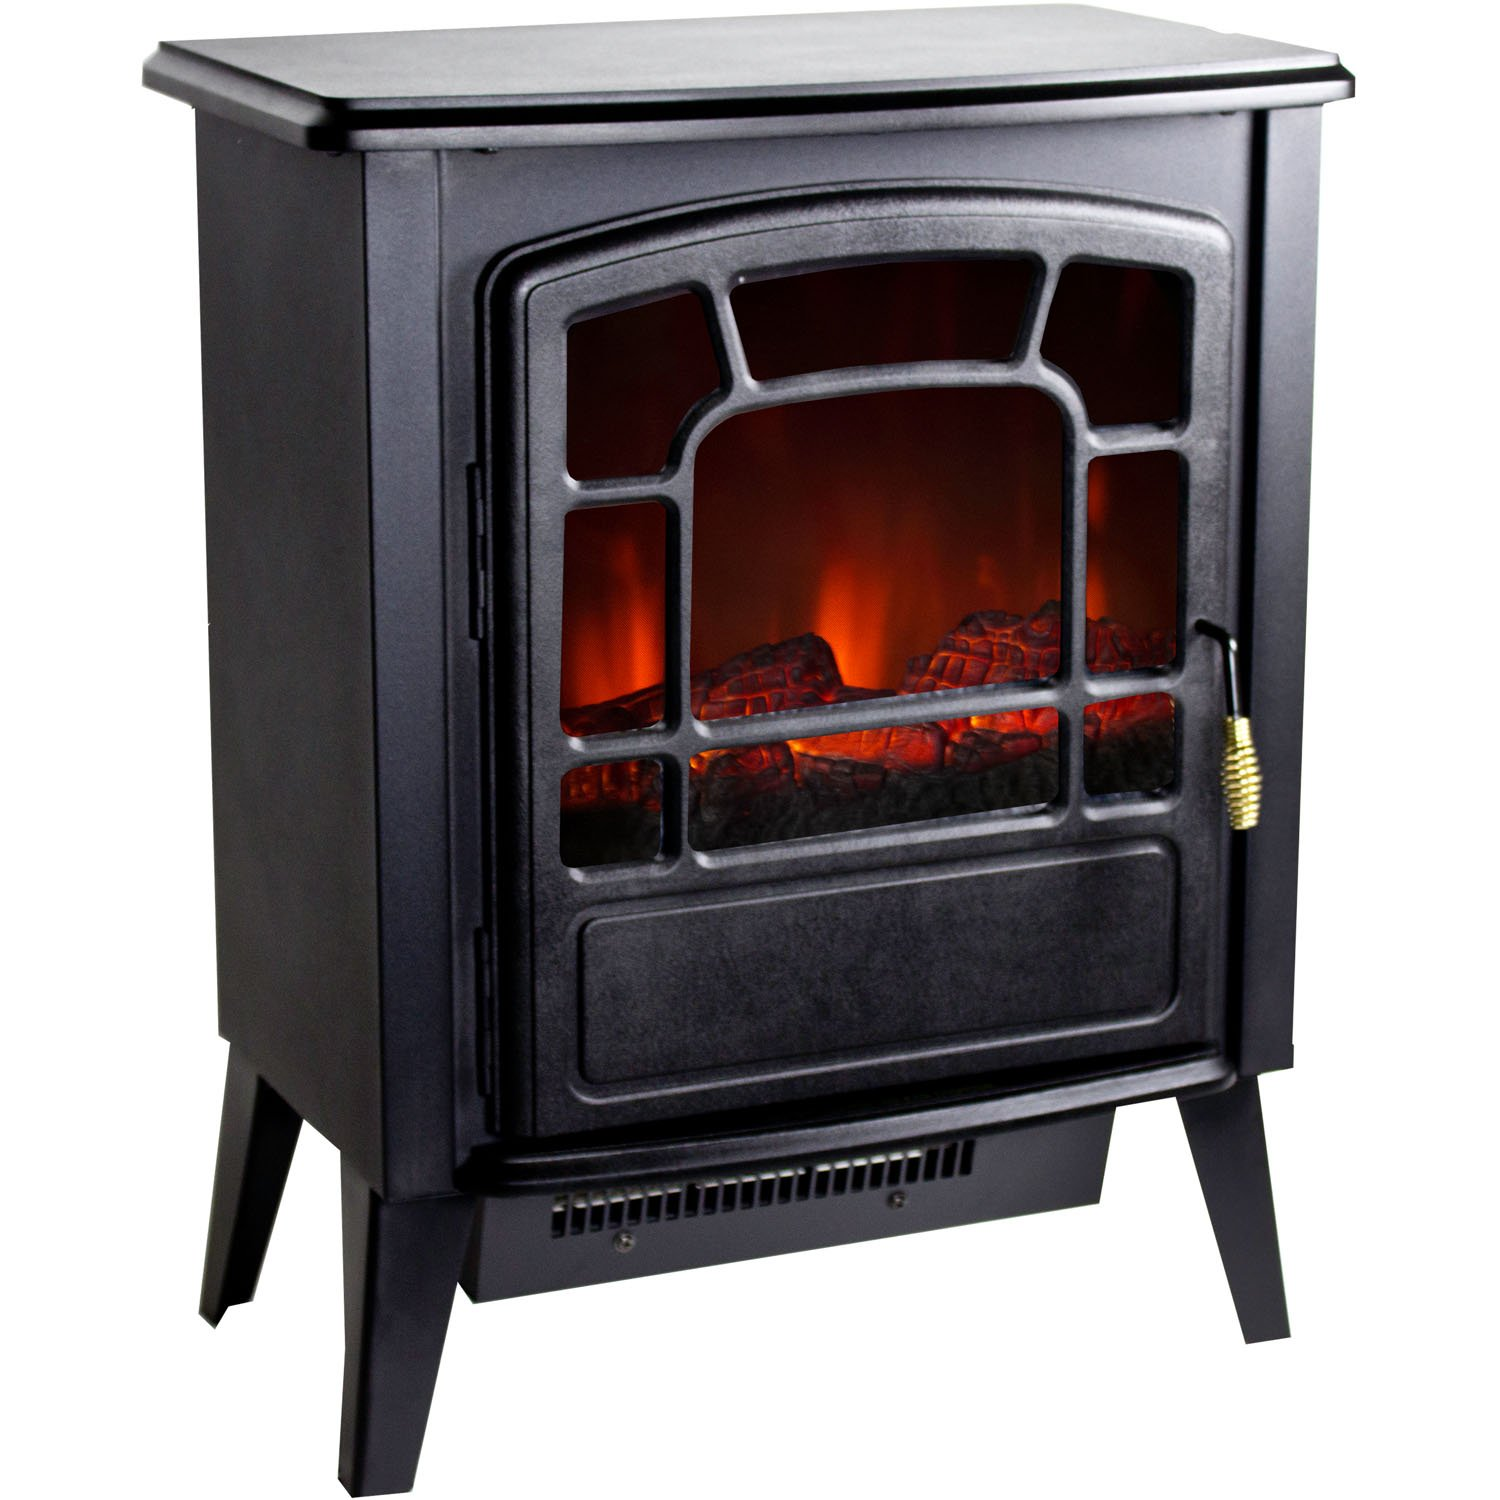 NEW Portable Floor Standing Electric Fireplace Retro Logwood Flame Space Heater  eBay